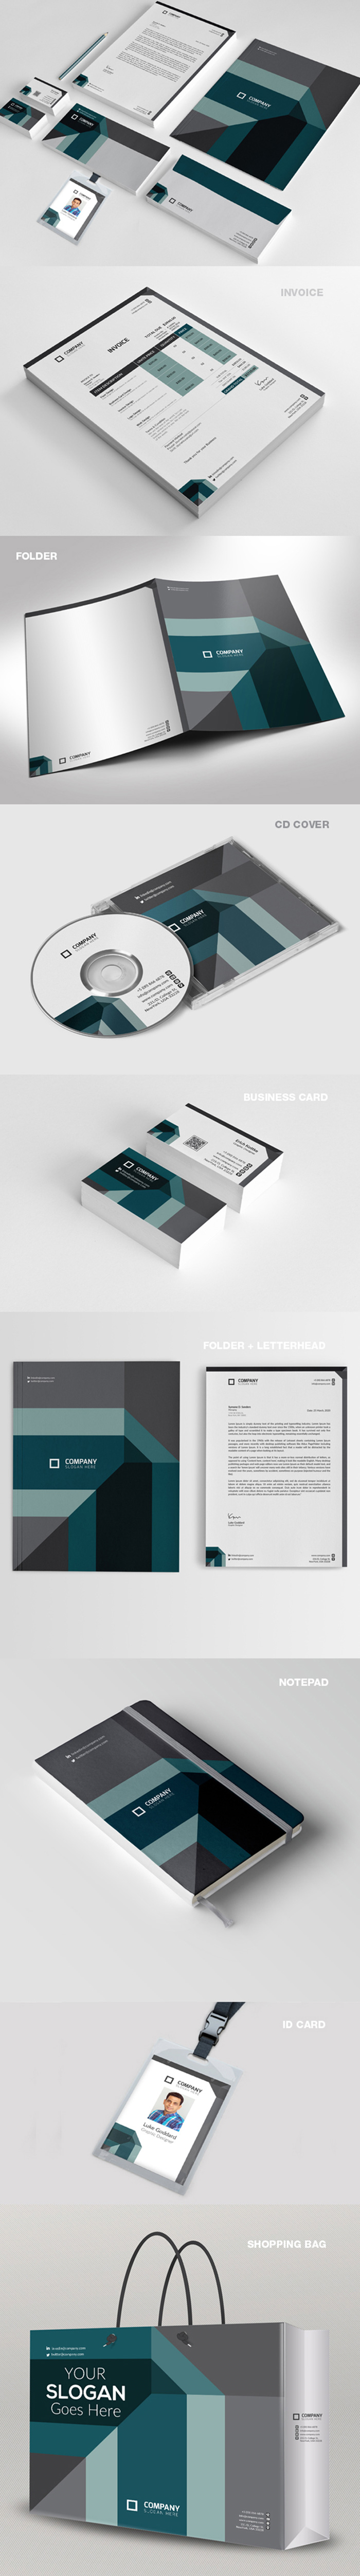 50 Corporate Identities with Extended License - 10